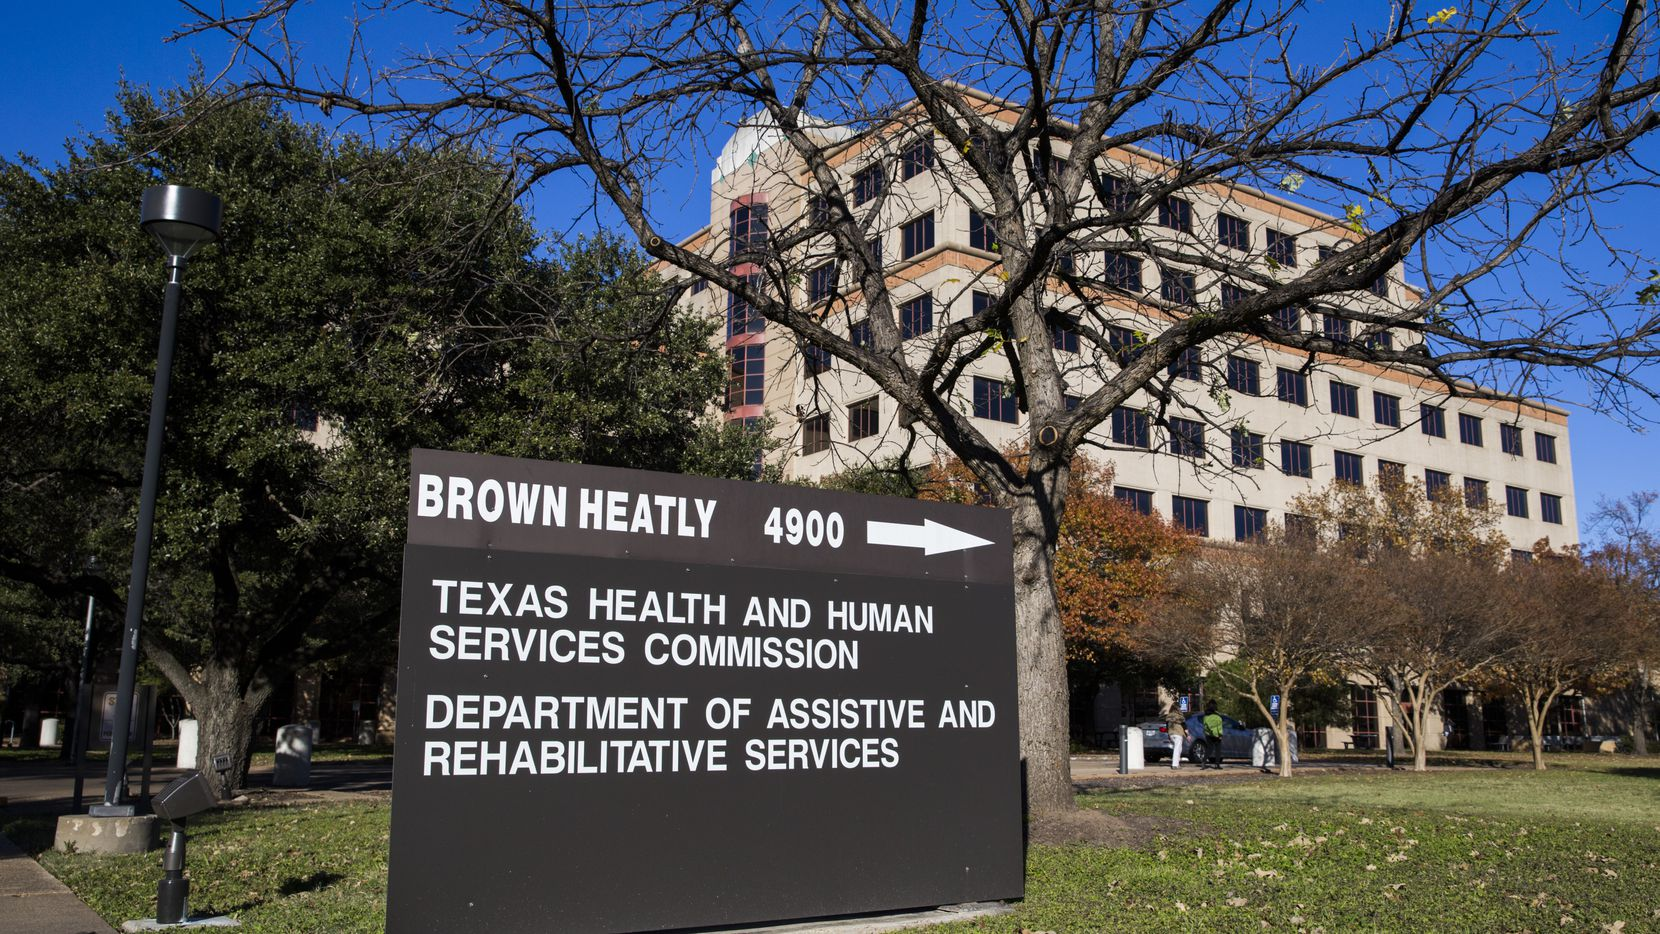 Texas' mega agency for health care and social services is rescinding proposed cuts to women's health, family planning and domestic violence programs, it announced Tuesday. But the Health and Human Services Commission, shown in a 2017 file photo, also said it'll commence a hiring freeze for eligibility workers who screen needy Texans applying for safety-net programs, if elected leaders ratify its latest proposal.